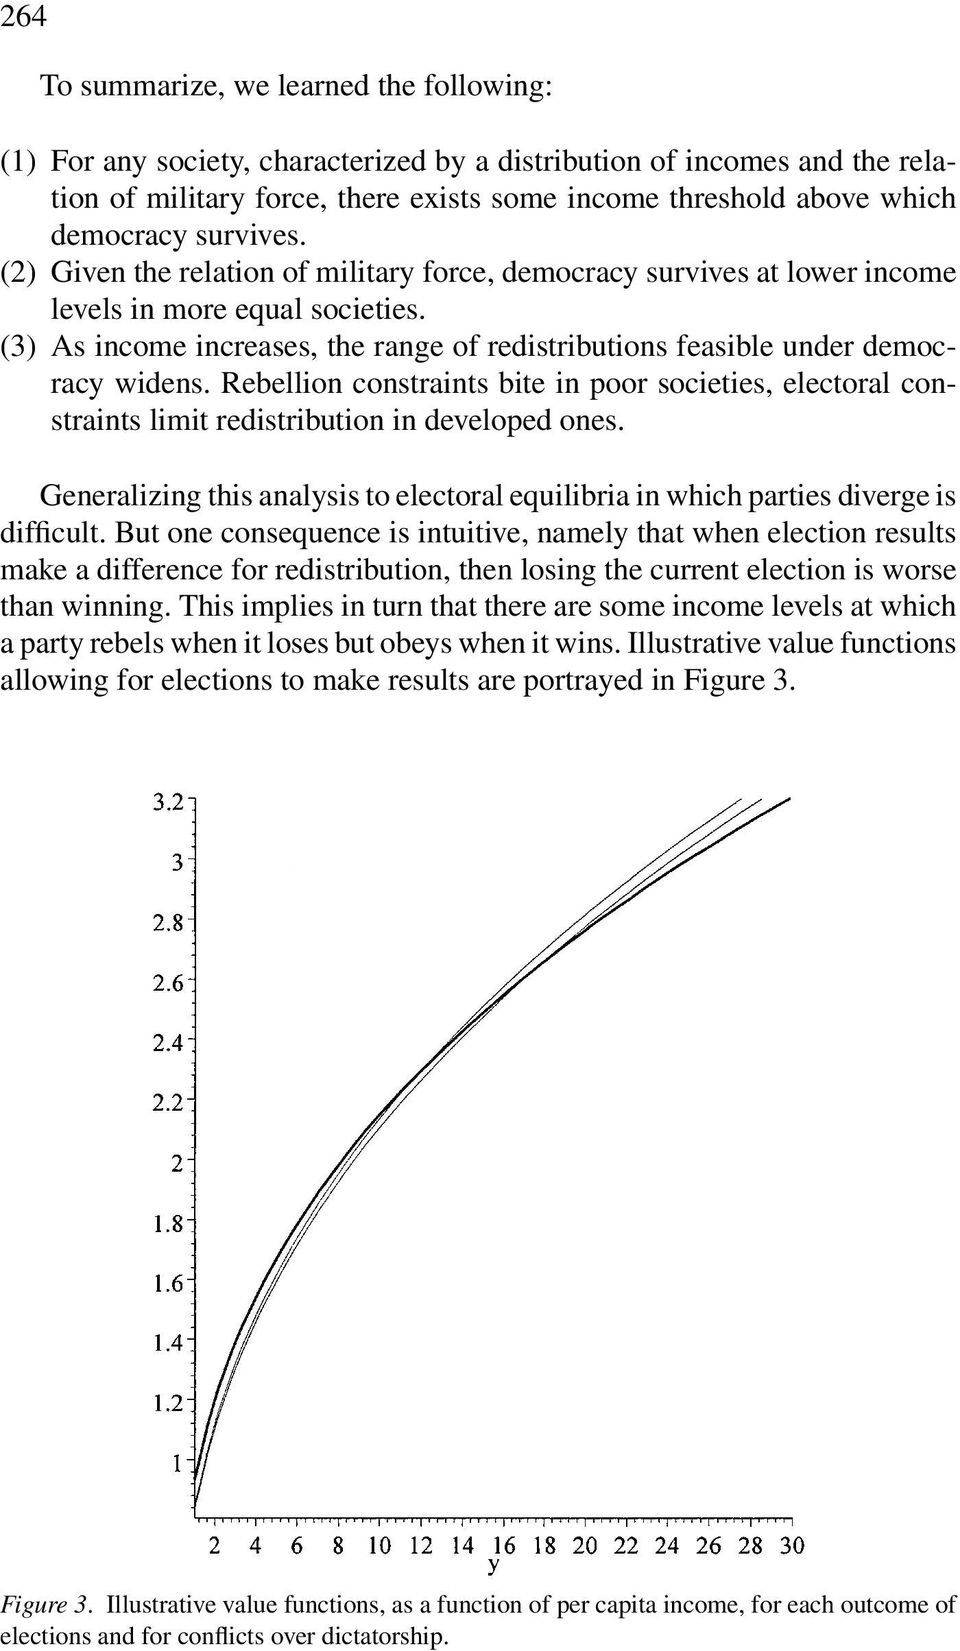 (3) As income increases, the range of redistributions feasible under democracy widens. Rebellion constraints bite in poor societies, electoral constraints limit redistribution in developed ones.